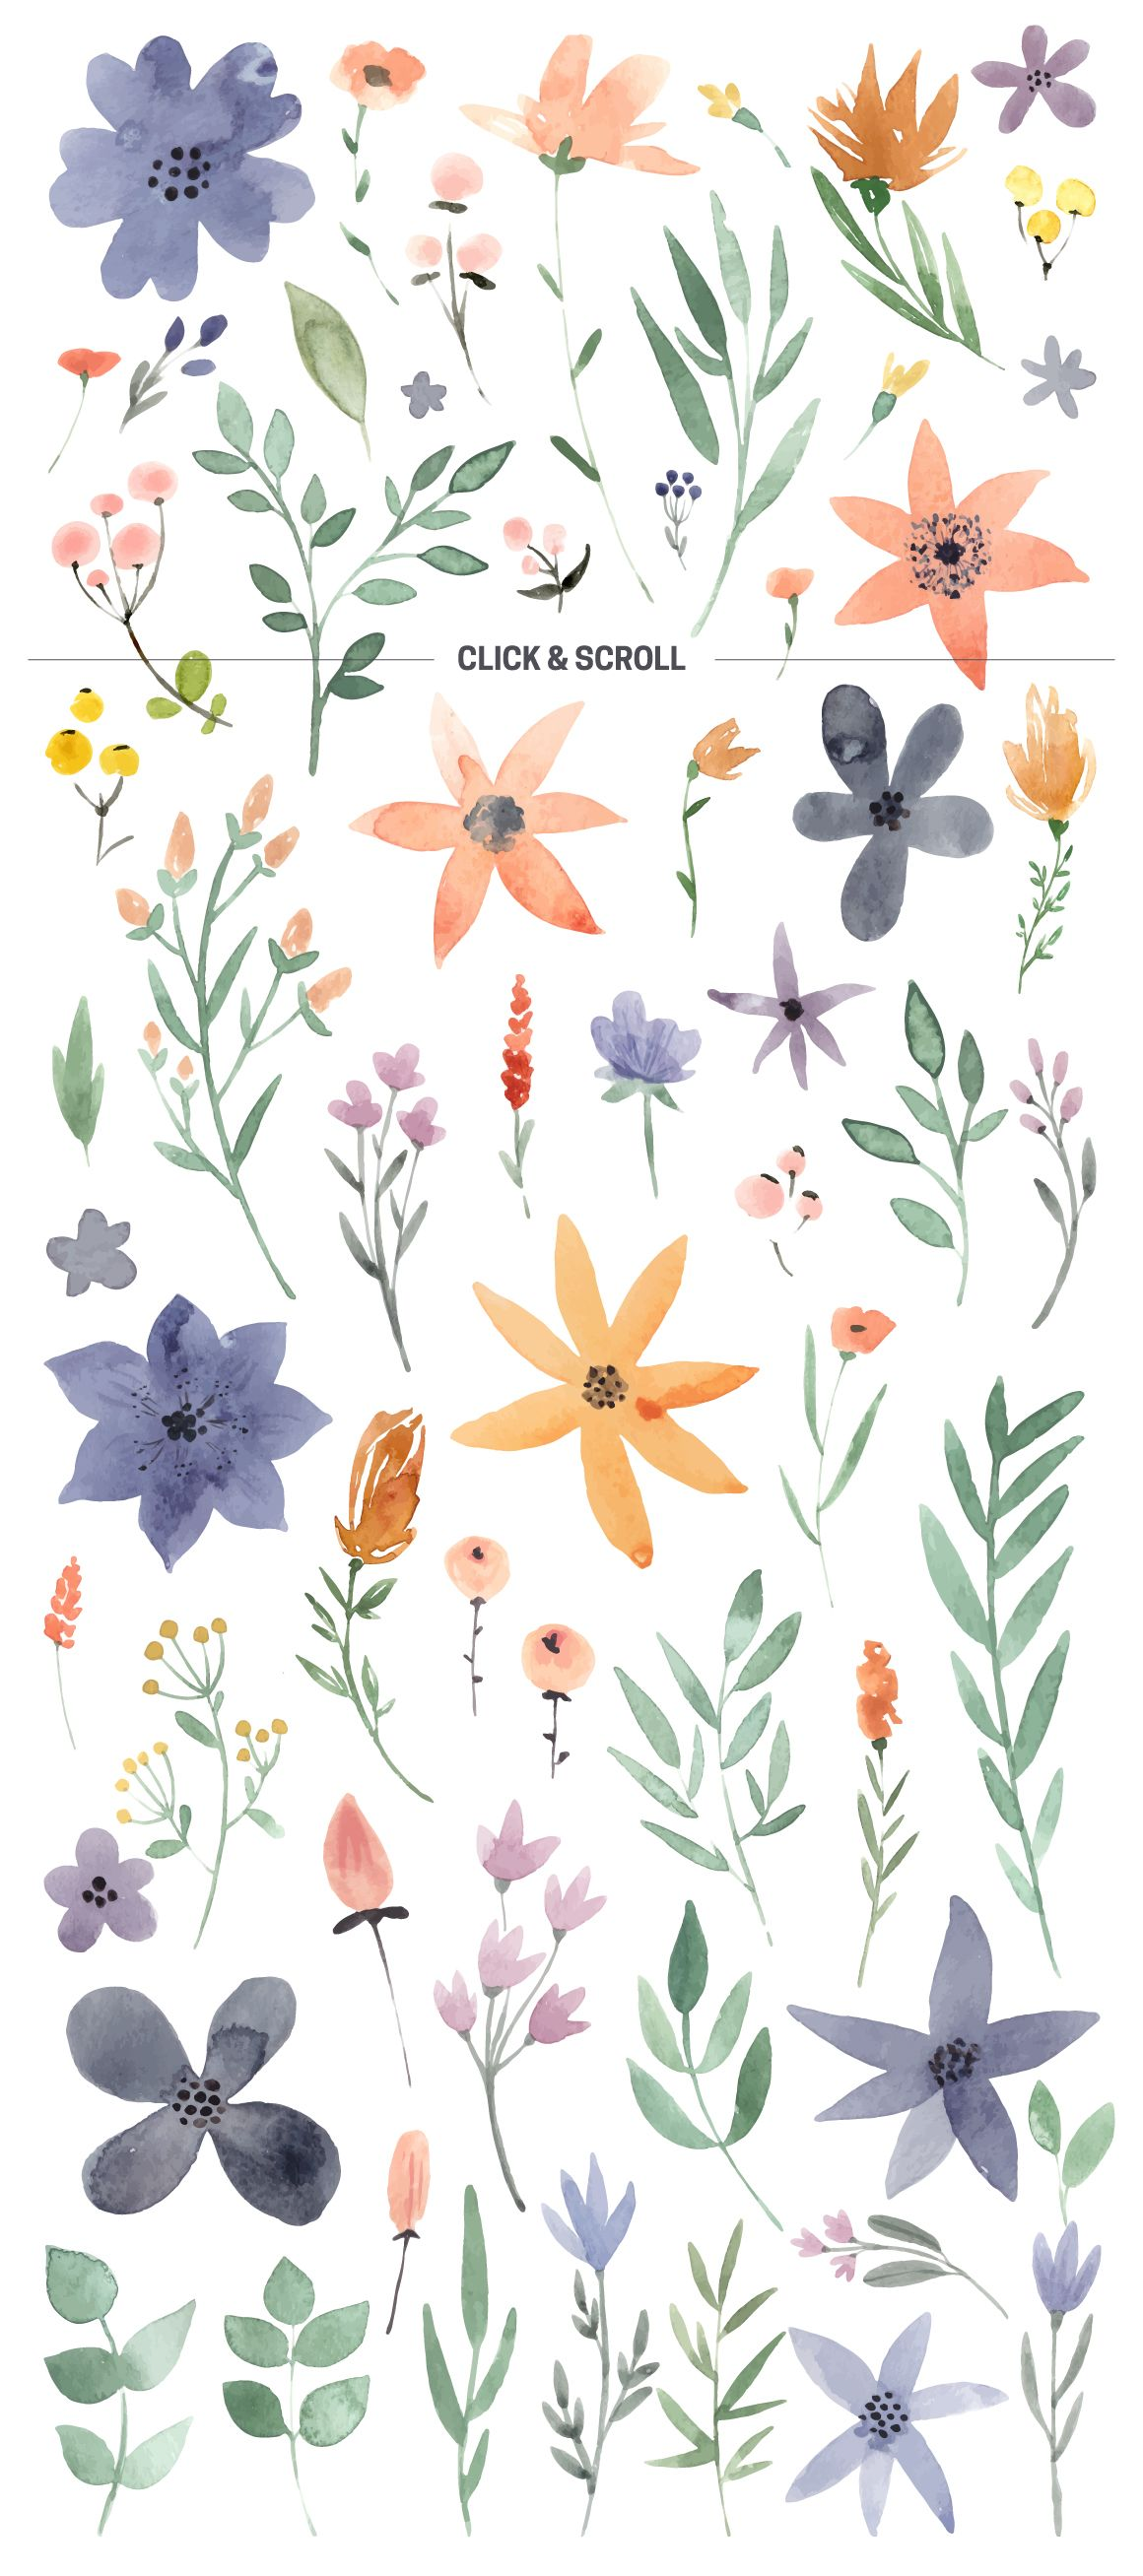 123 Diy Watercolor Flowers Eps Png By Favete Art On Creative